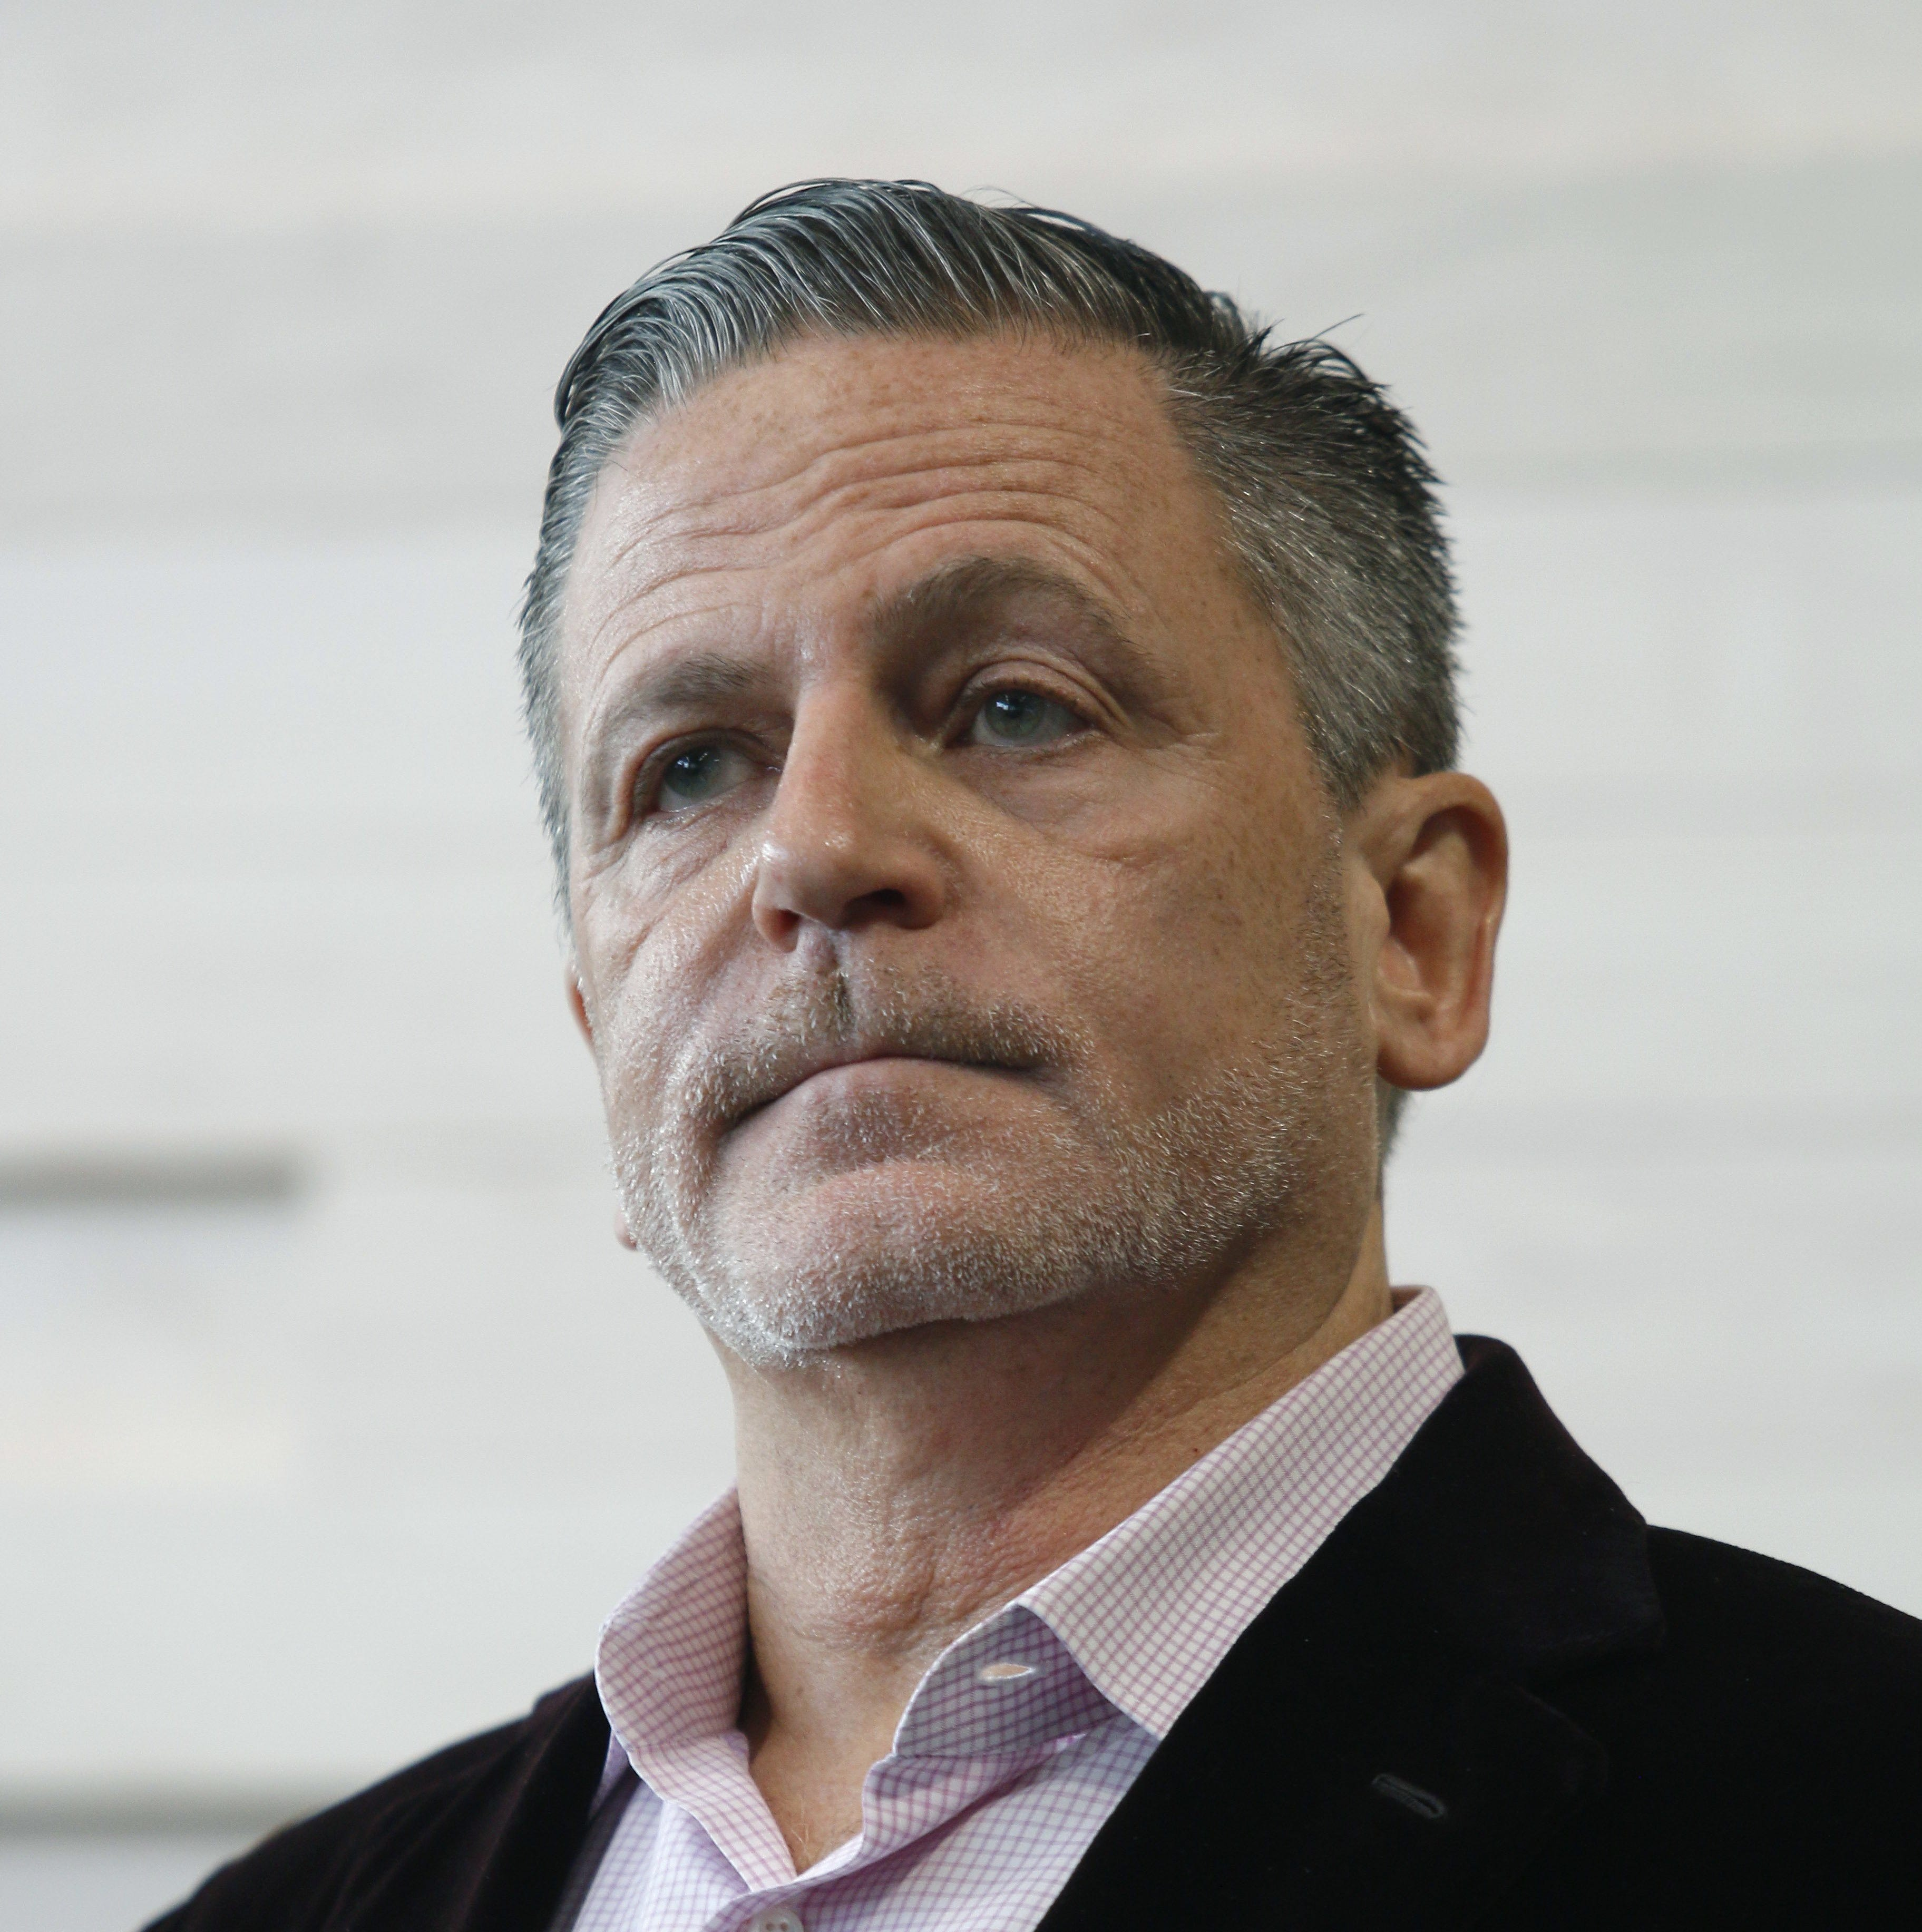 Dan Gilbert just dipped into the online dictionary, thesaurus business